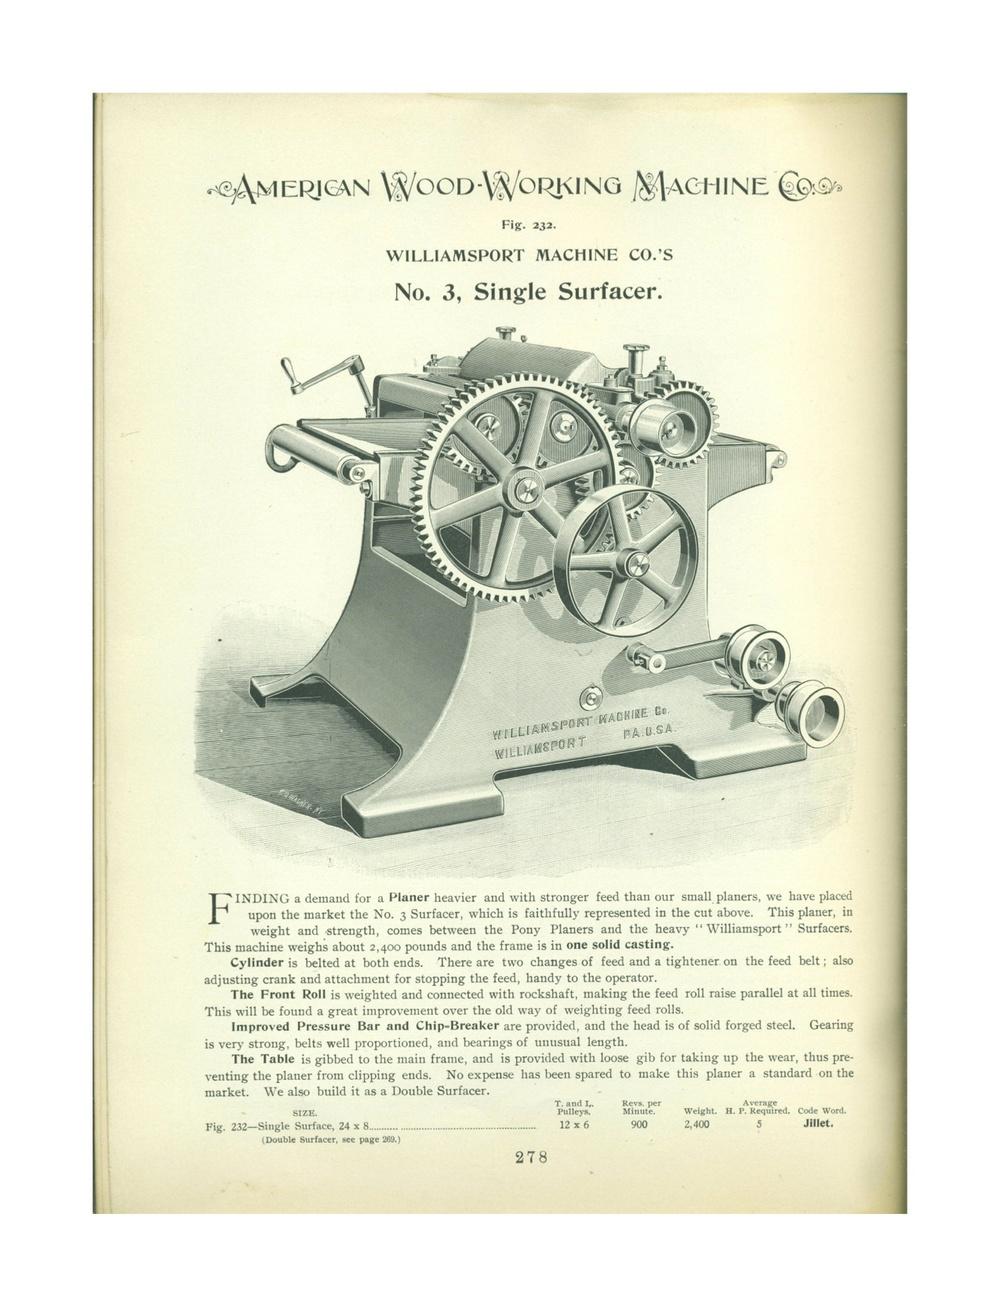 From 1900 American Woodworking Machinery Company catalog